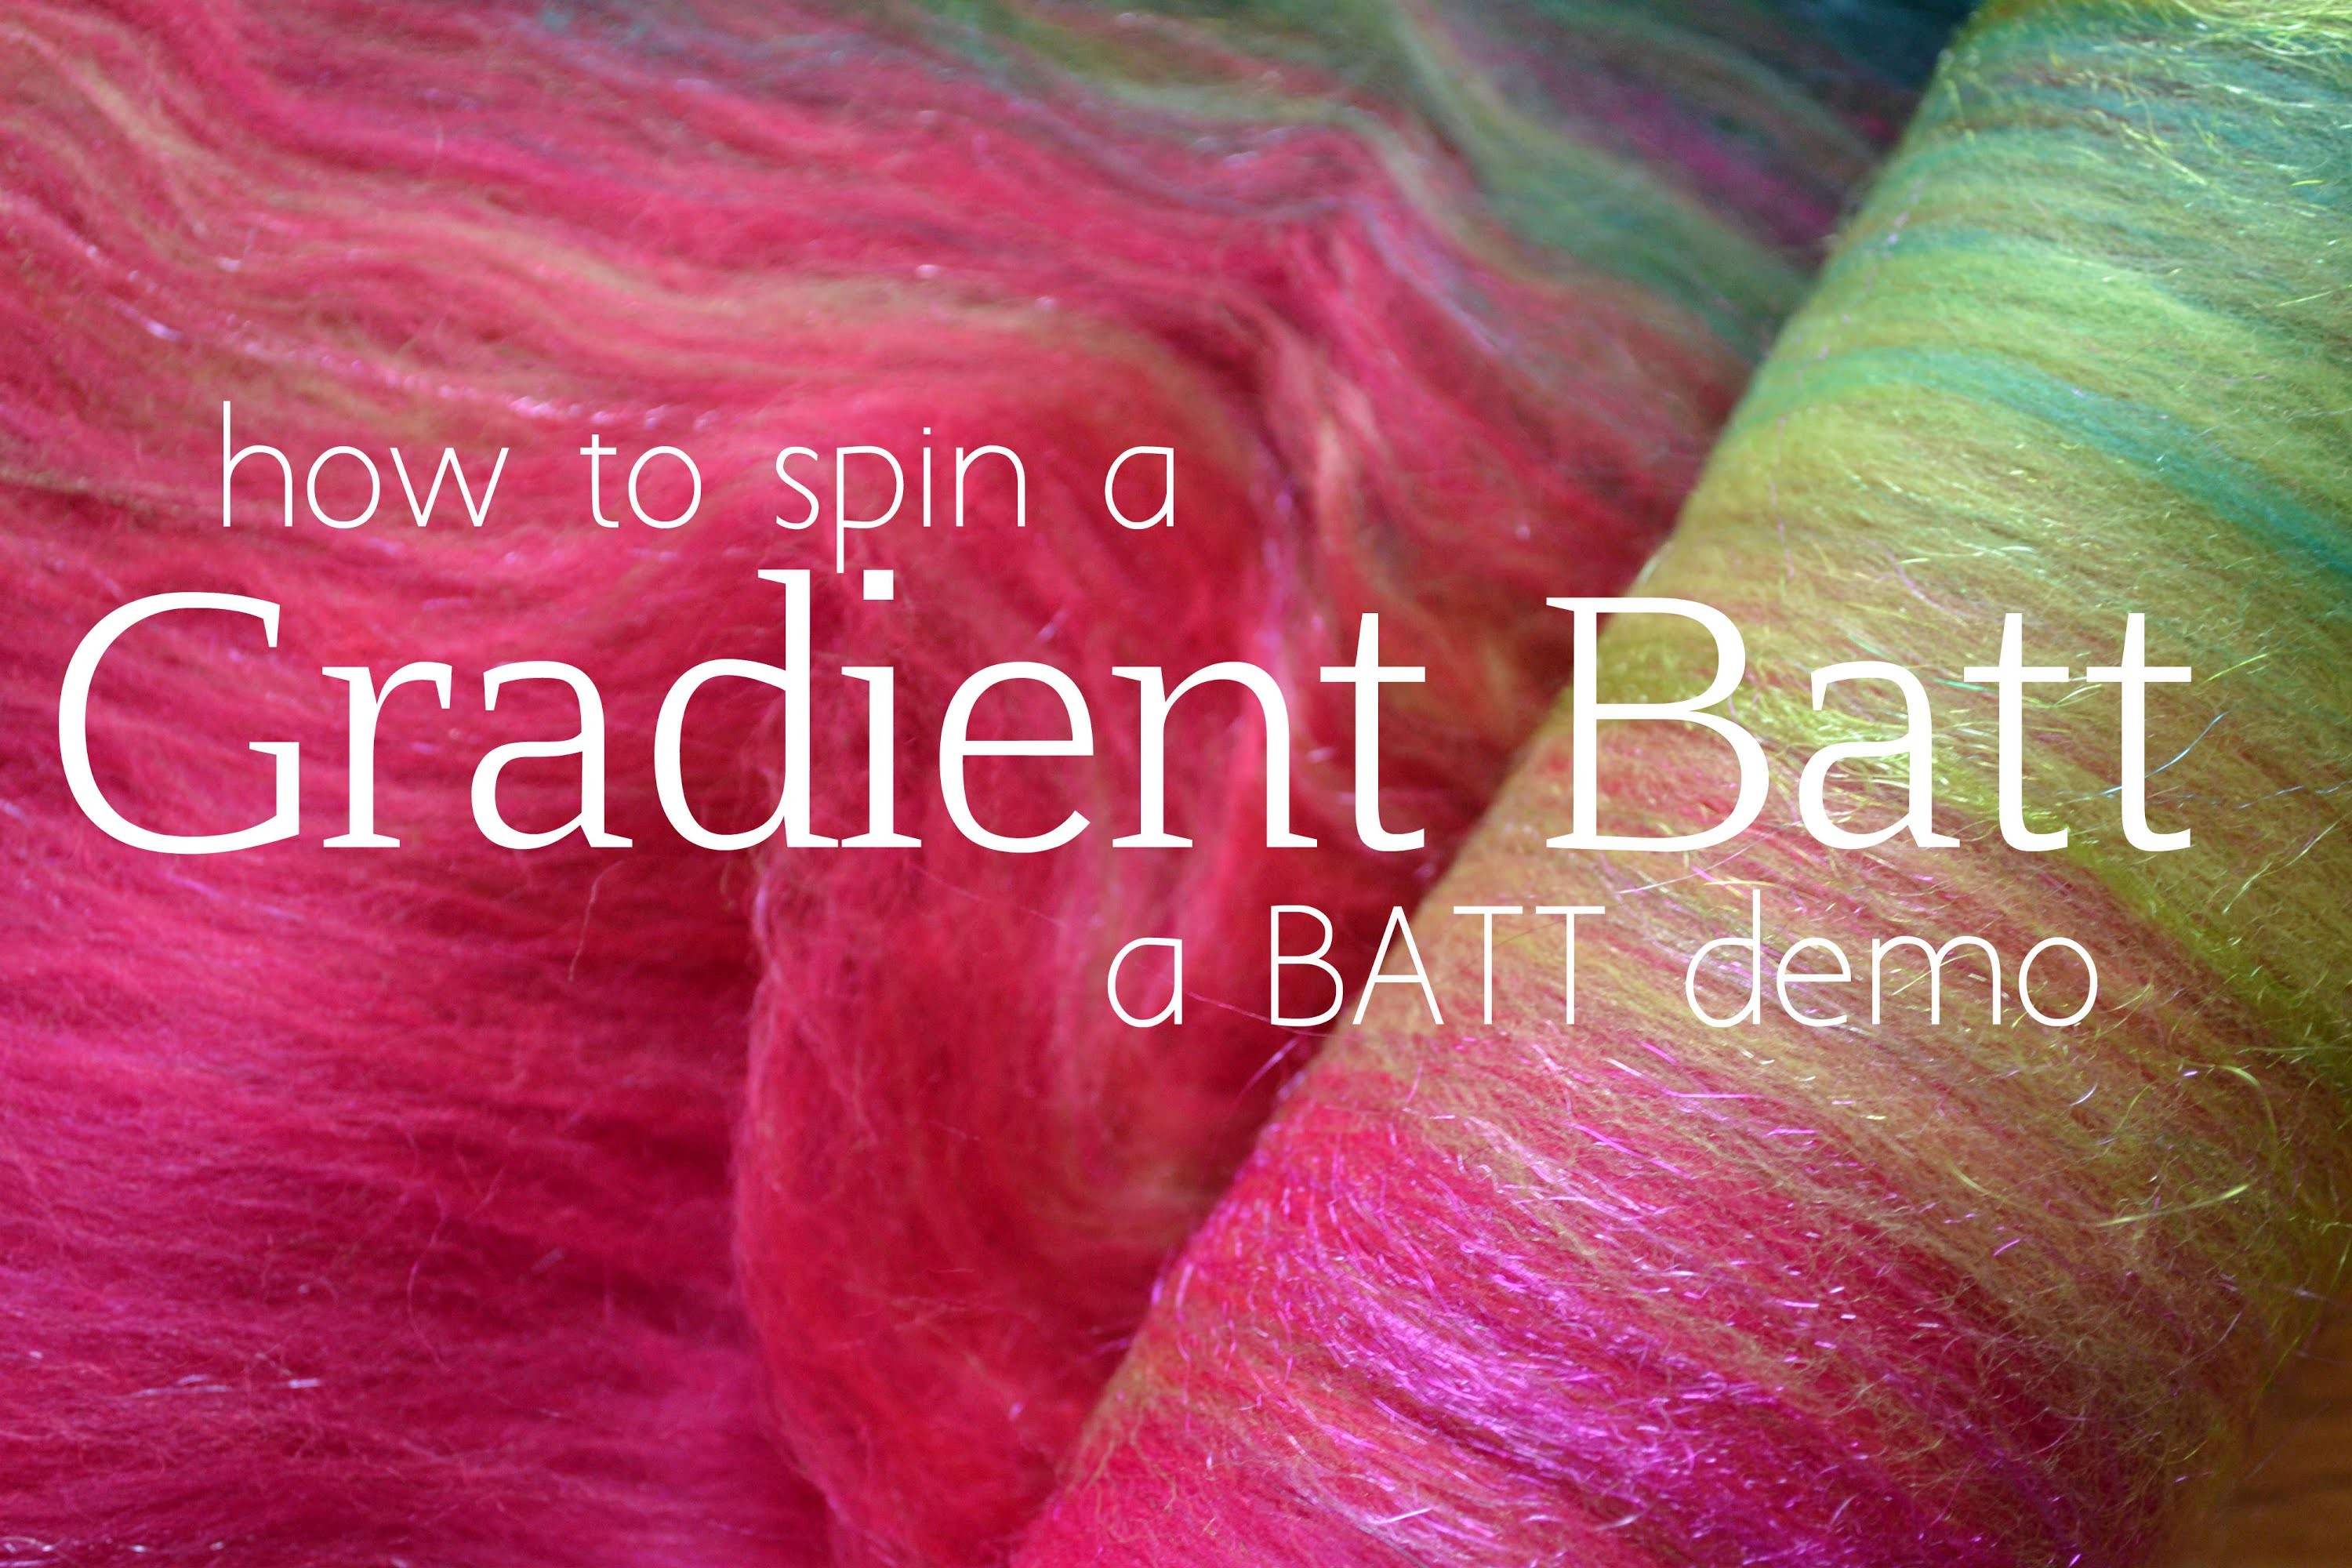 How to Spin a Gradient Batt Rolag Style